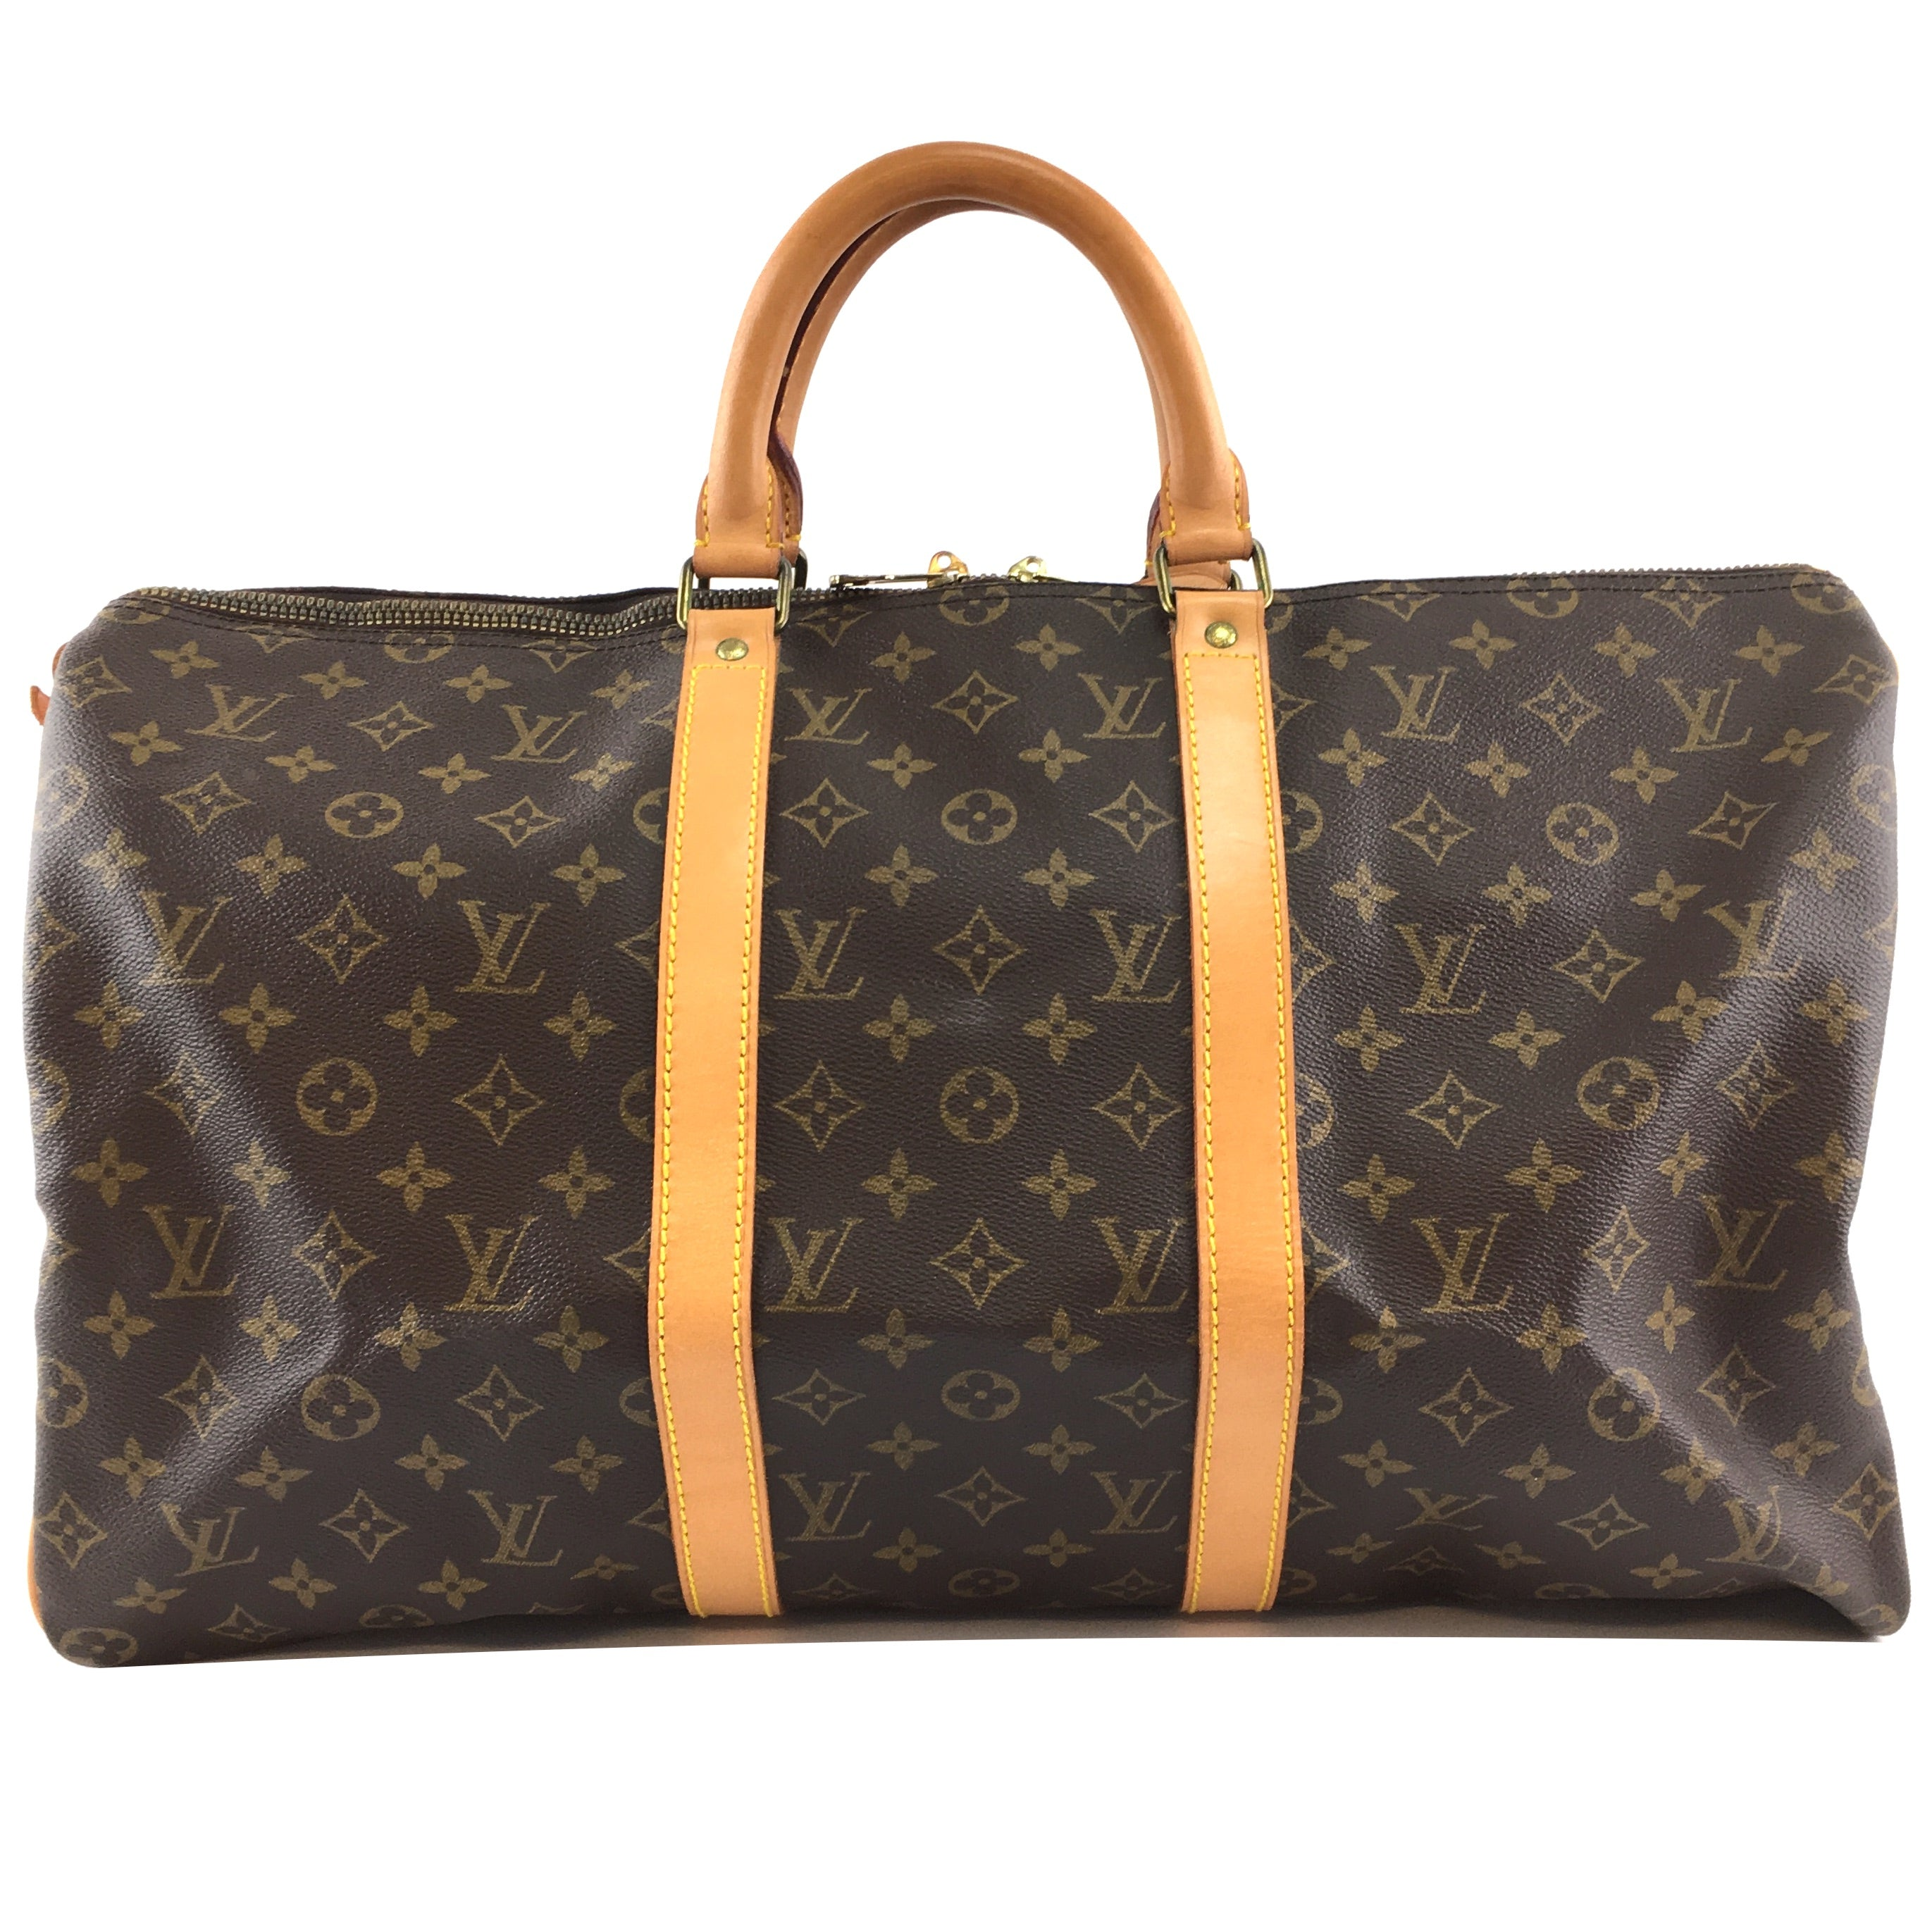 Louis Vuitton Keepall 50 Monogram Canvas